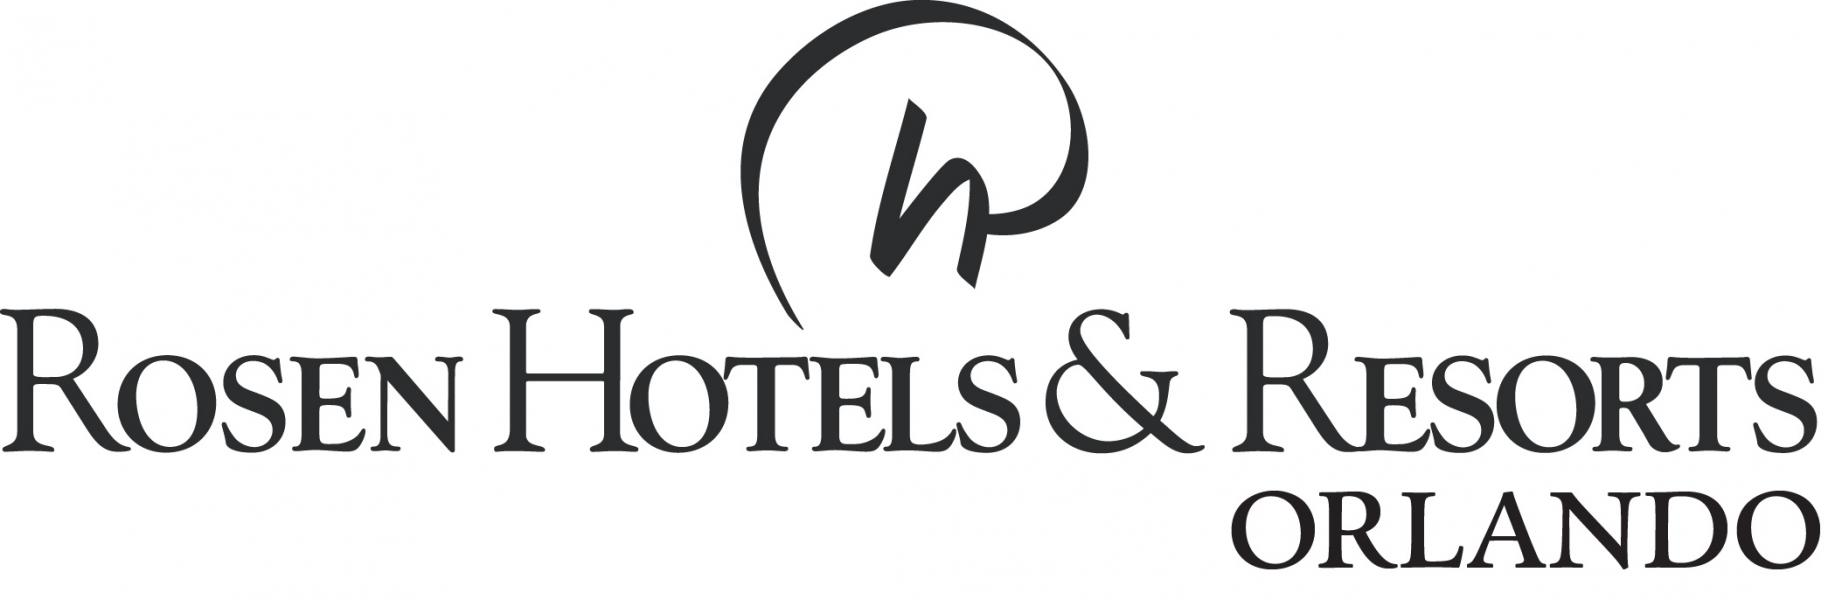 Rosen Hotels & Resorts Orlando logo (noir)